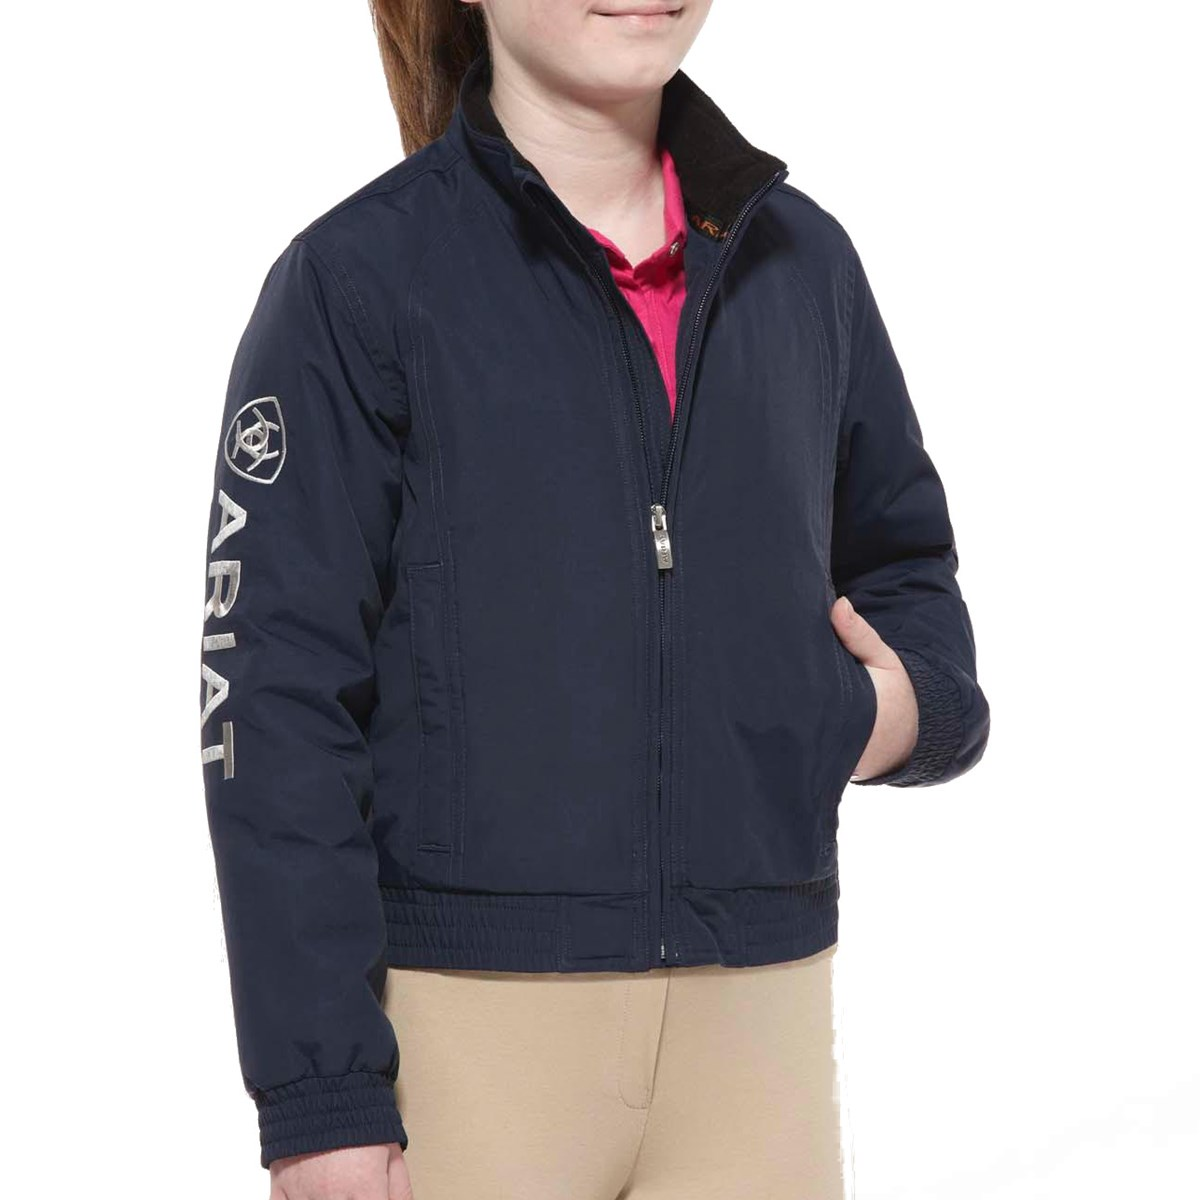 487ce2d17ed Ariat Youth Stable Team Blouson Jacket - Navy - Redpost Equestrian